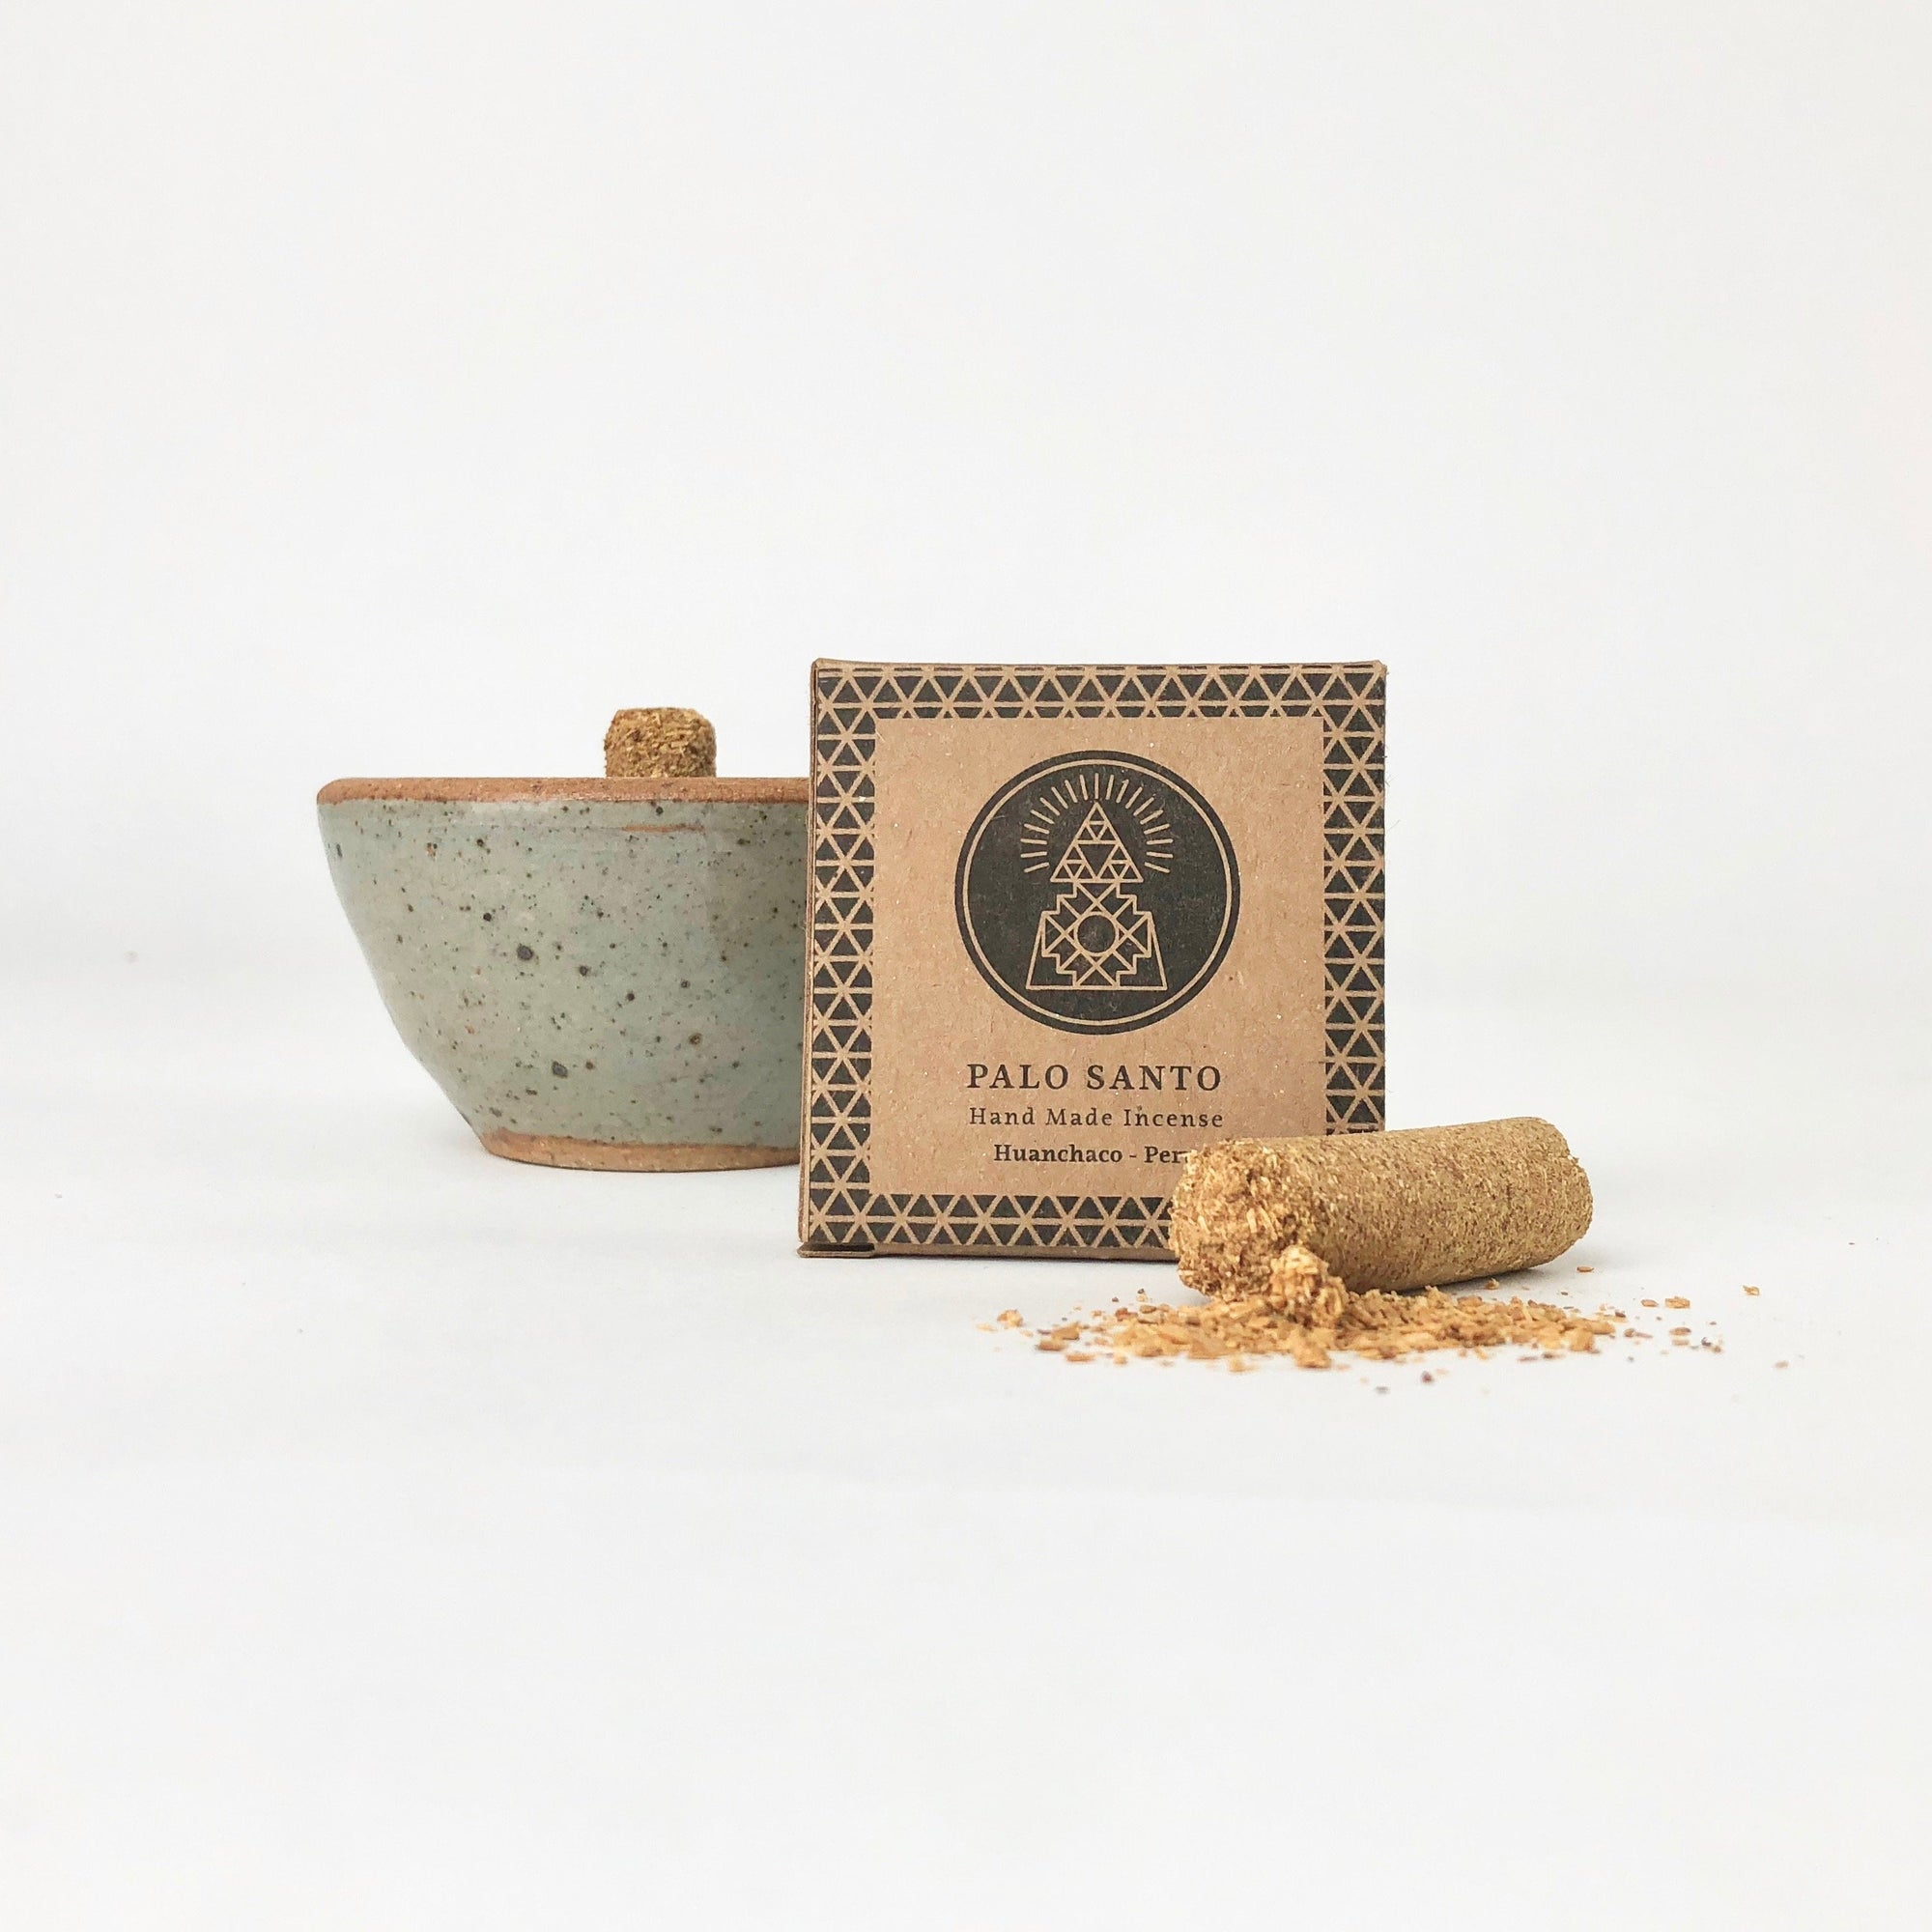 Palo Santo - Hand Pressed Incense